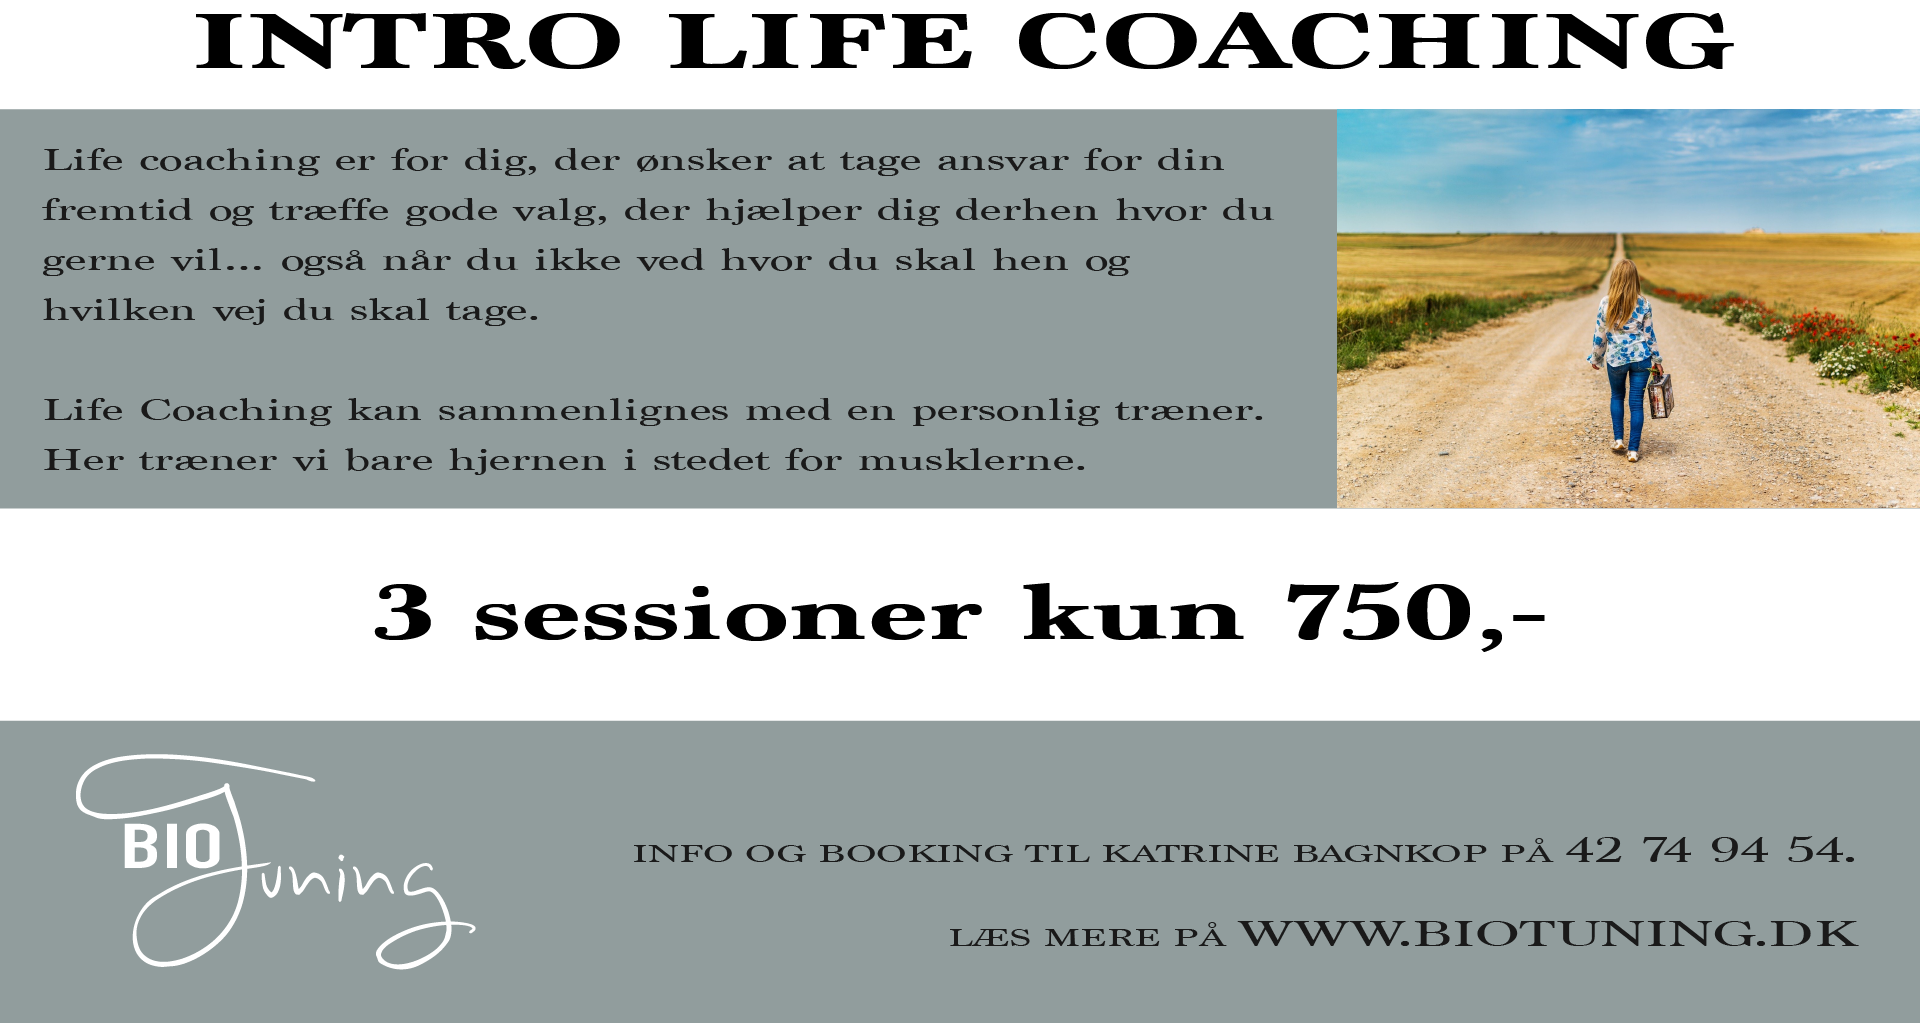 introtilbud life coaching